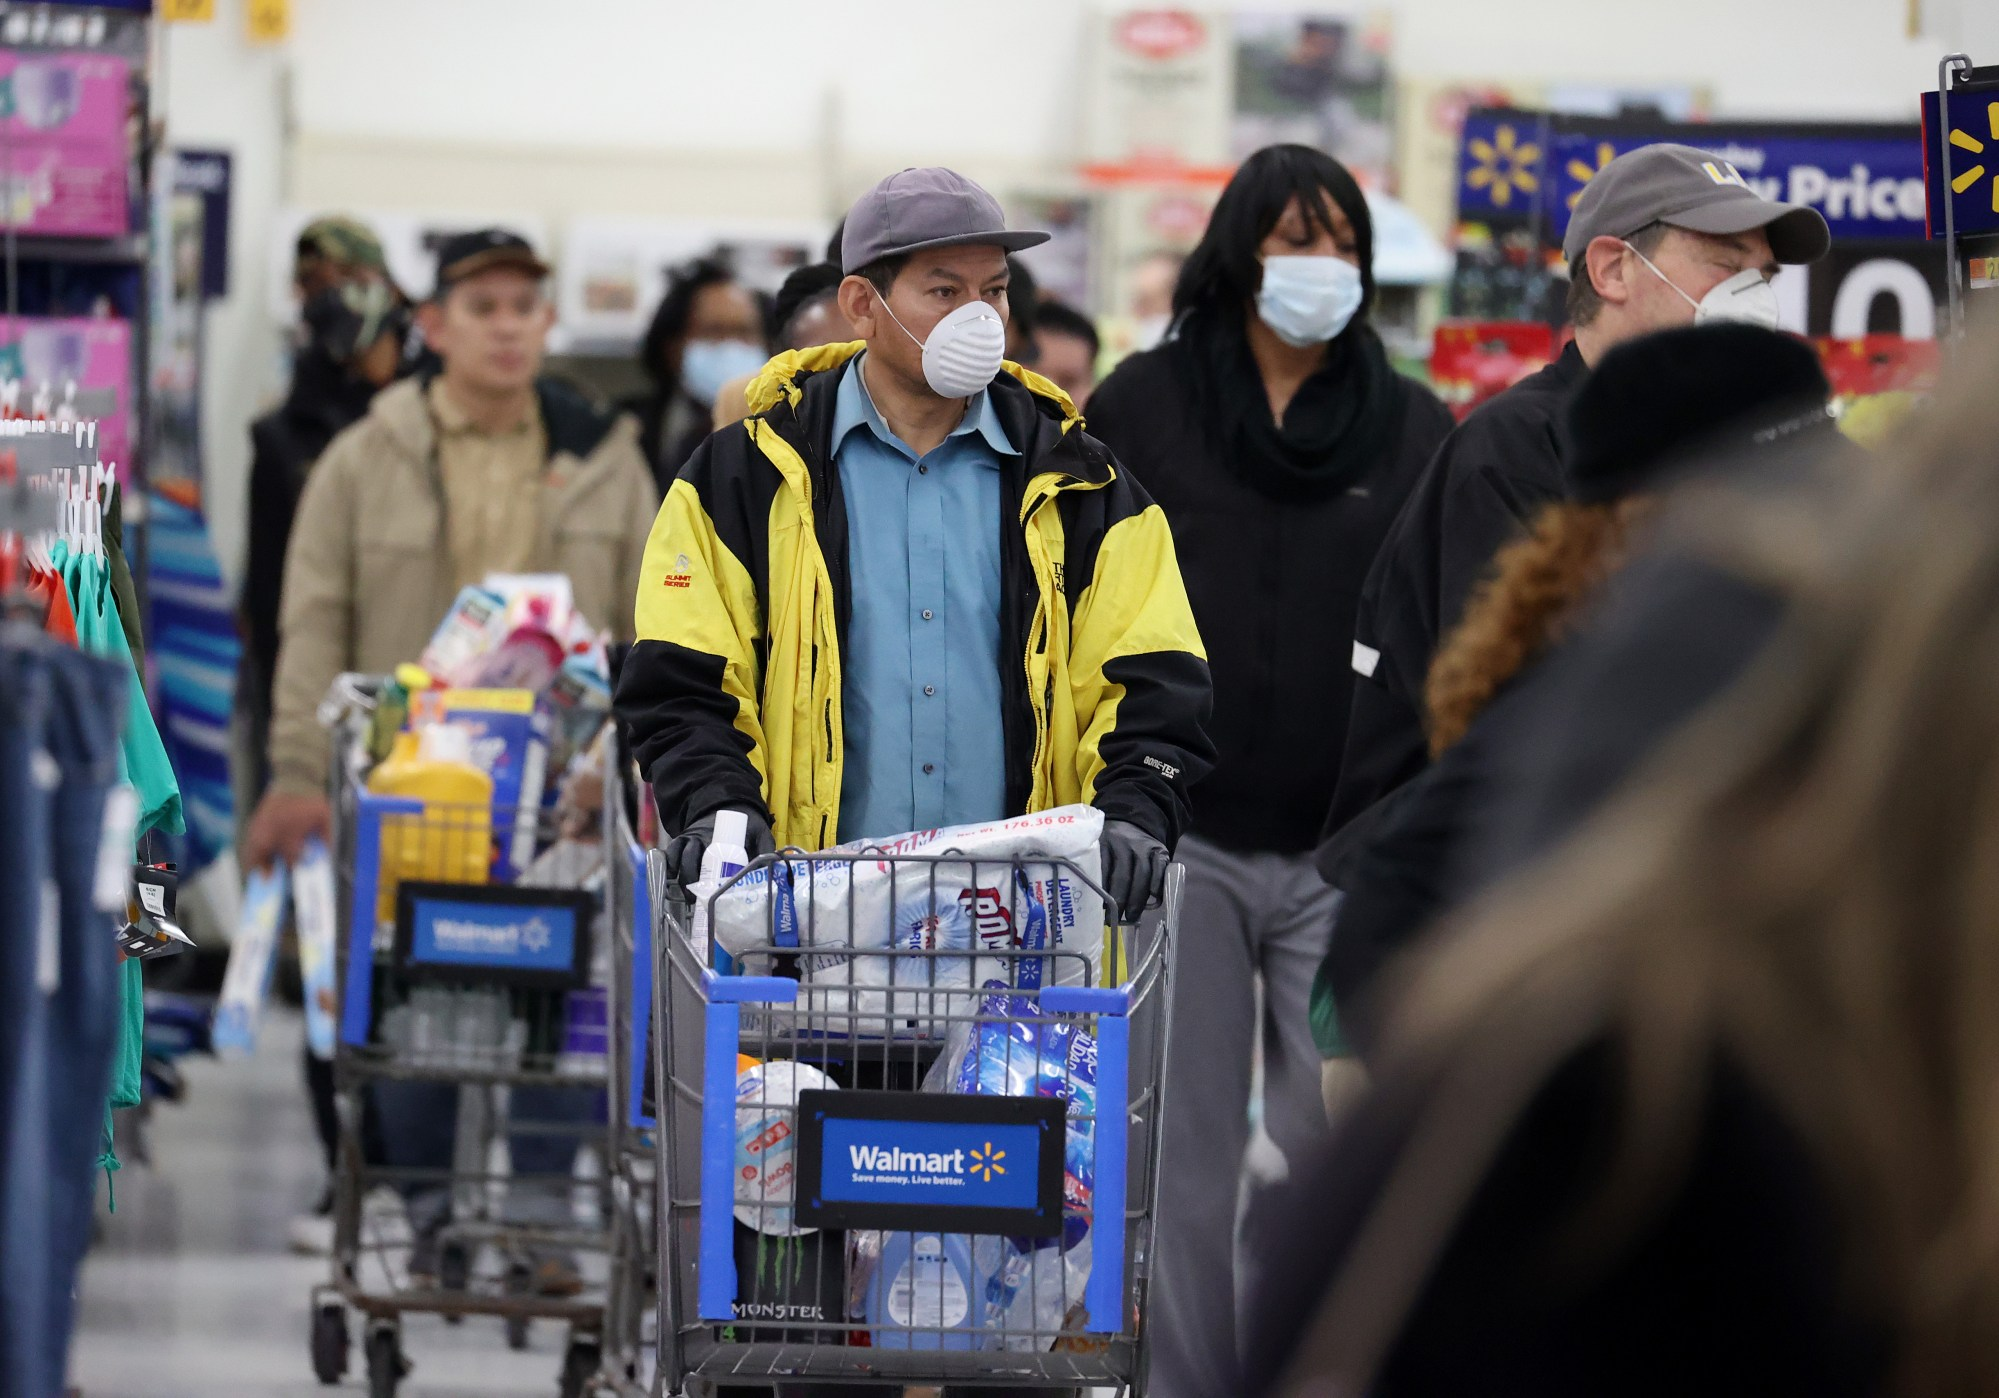 People wearing masks and gloves wait to checkout at Walmart on April 3, 2020, in Uniondale, New York. (Al Bello/Getty Images)